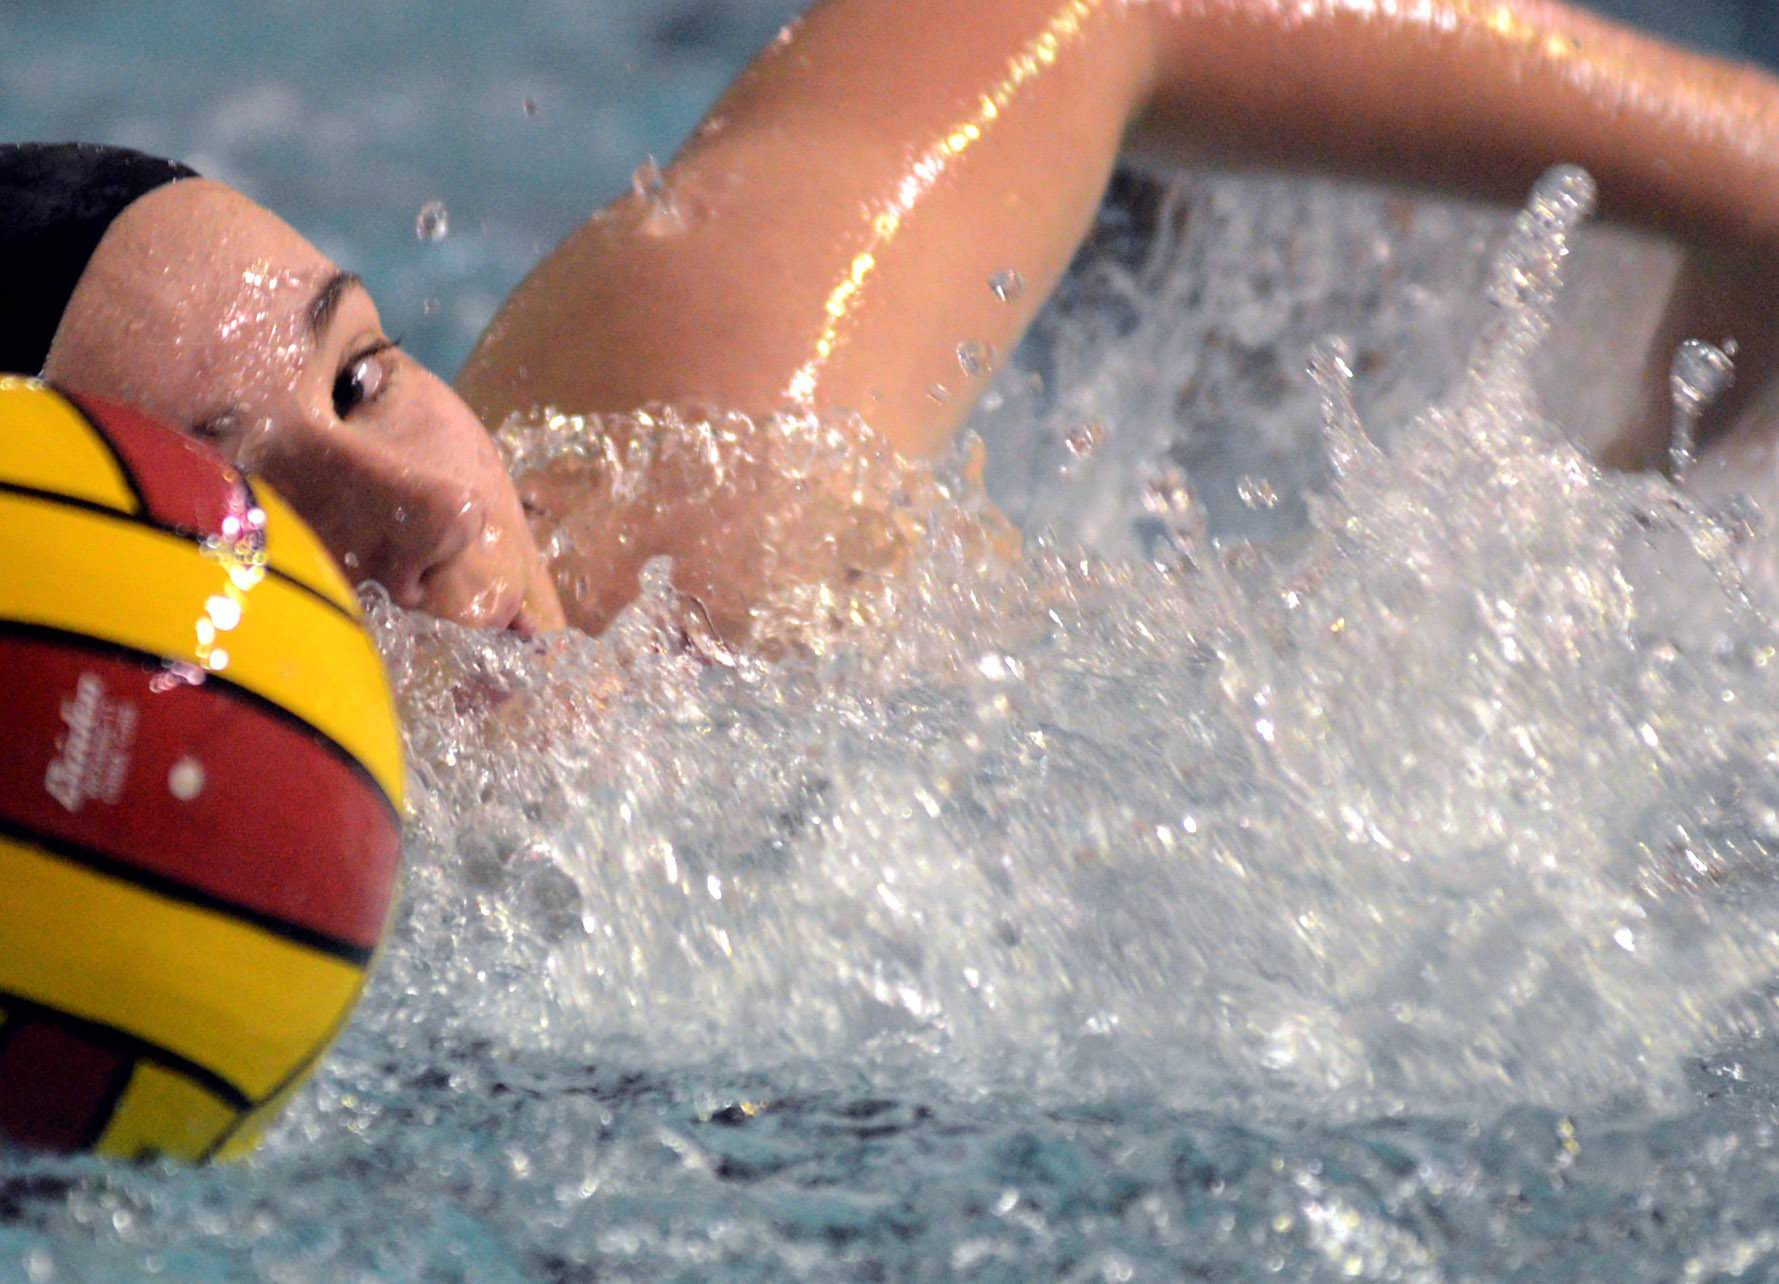 Palatine's Caitlin McHugh moves the ball against Conant during Monday's water polo match in Palatine.